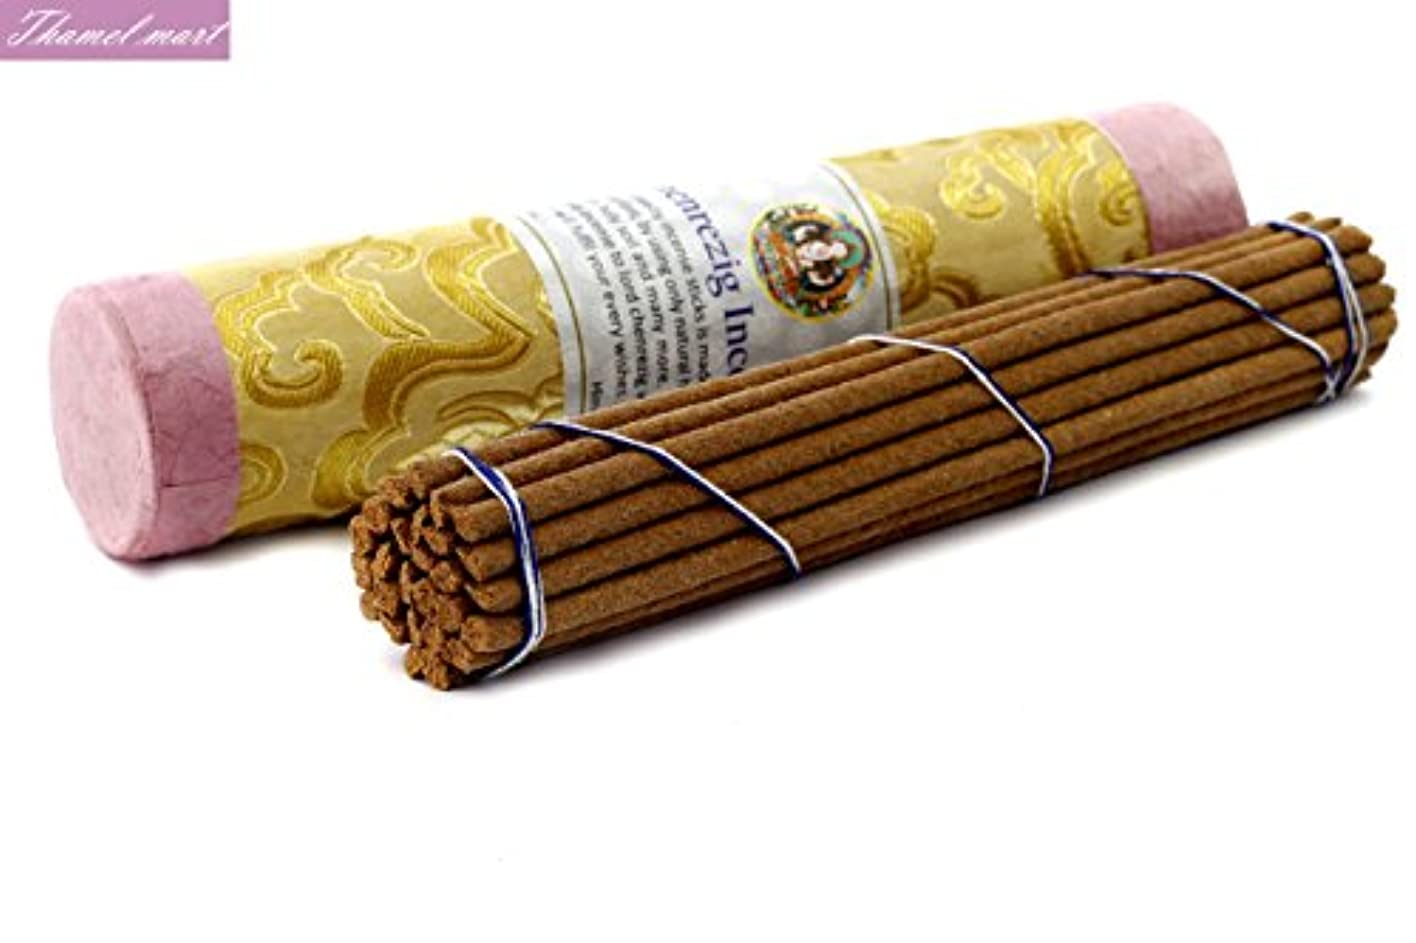 ポケット成長するプレゼンchenrezing Tibetan Incense Sticks – Spiritual & Medicinal Relaxation Potpourrisより – 効果的& Scented Oils